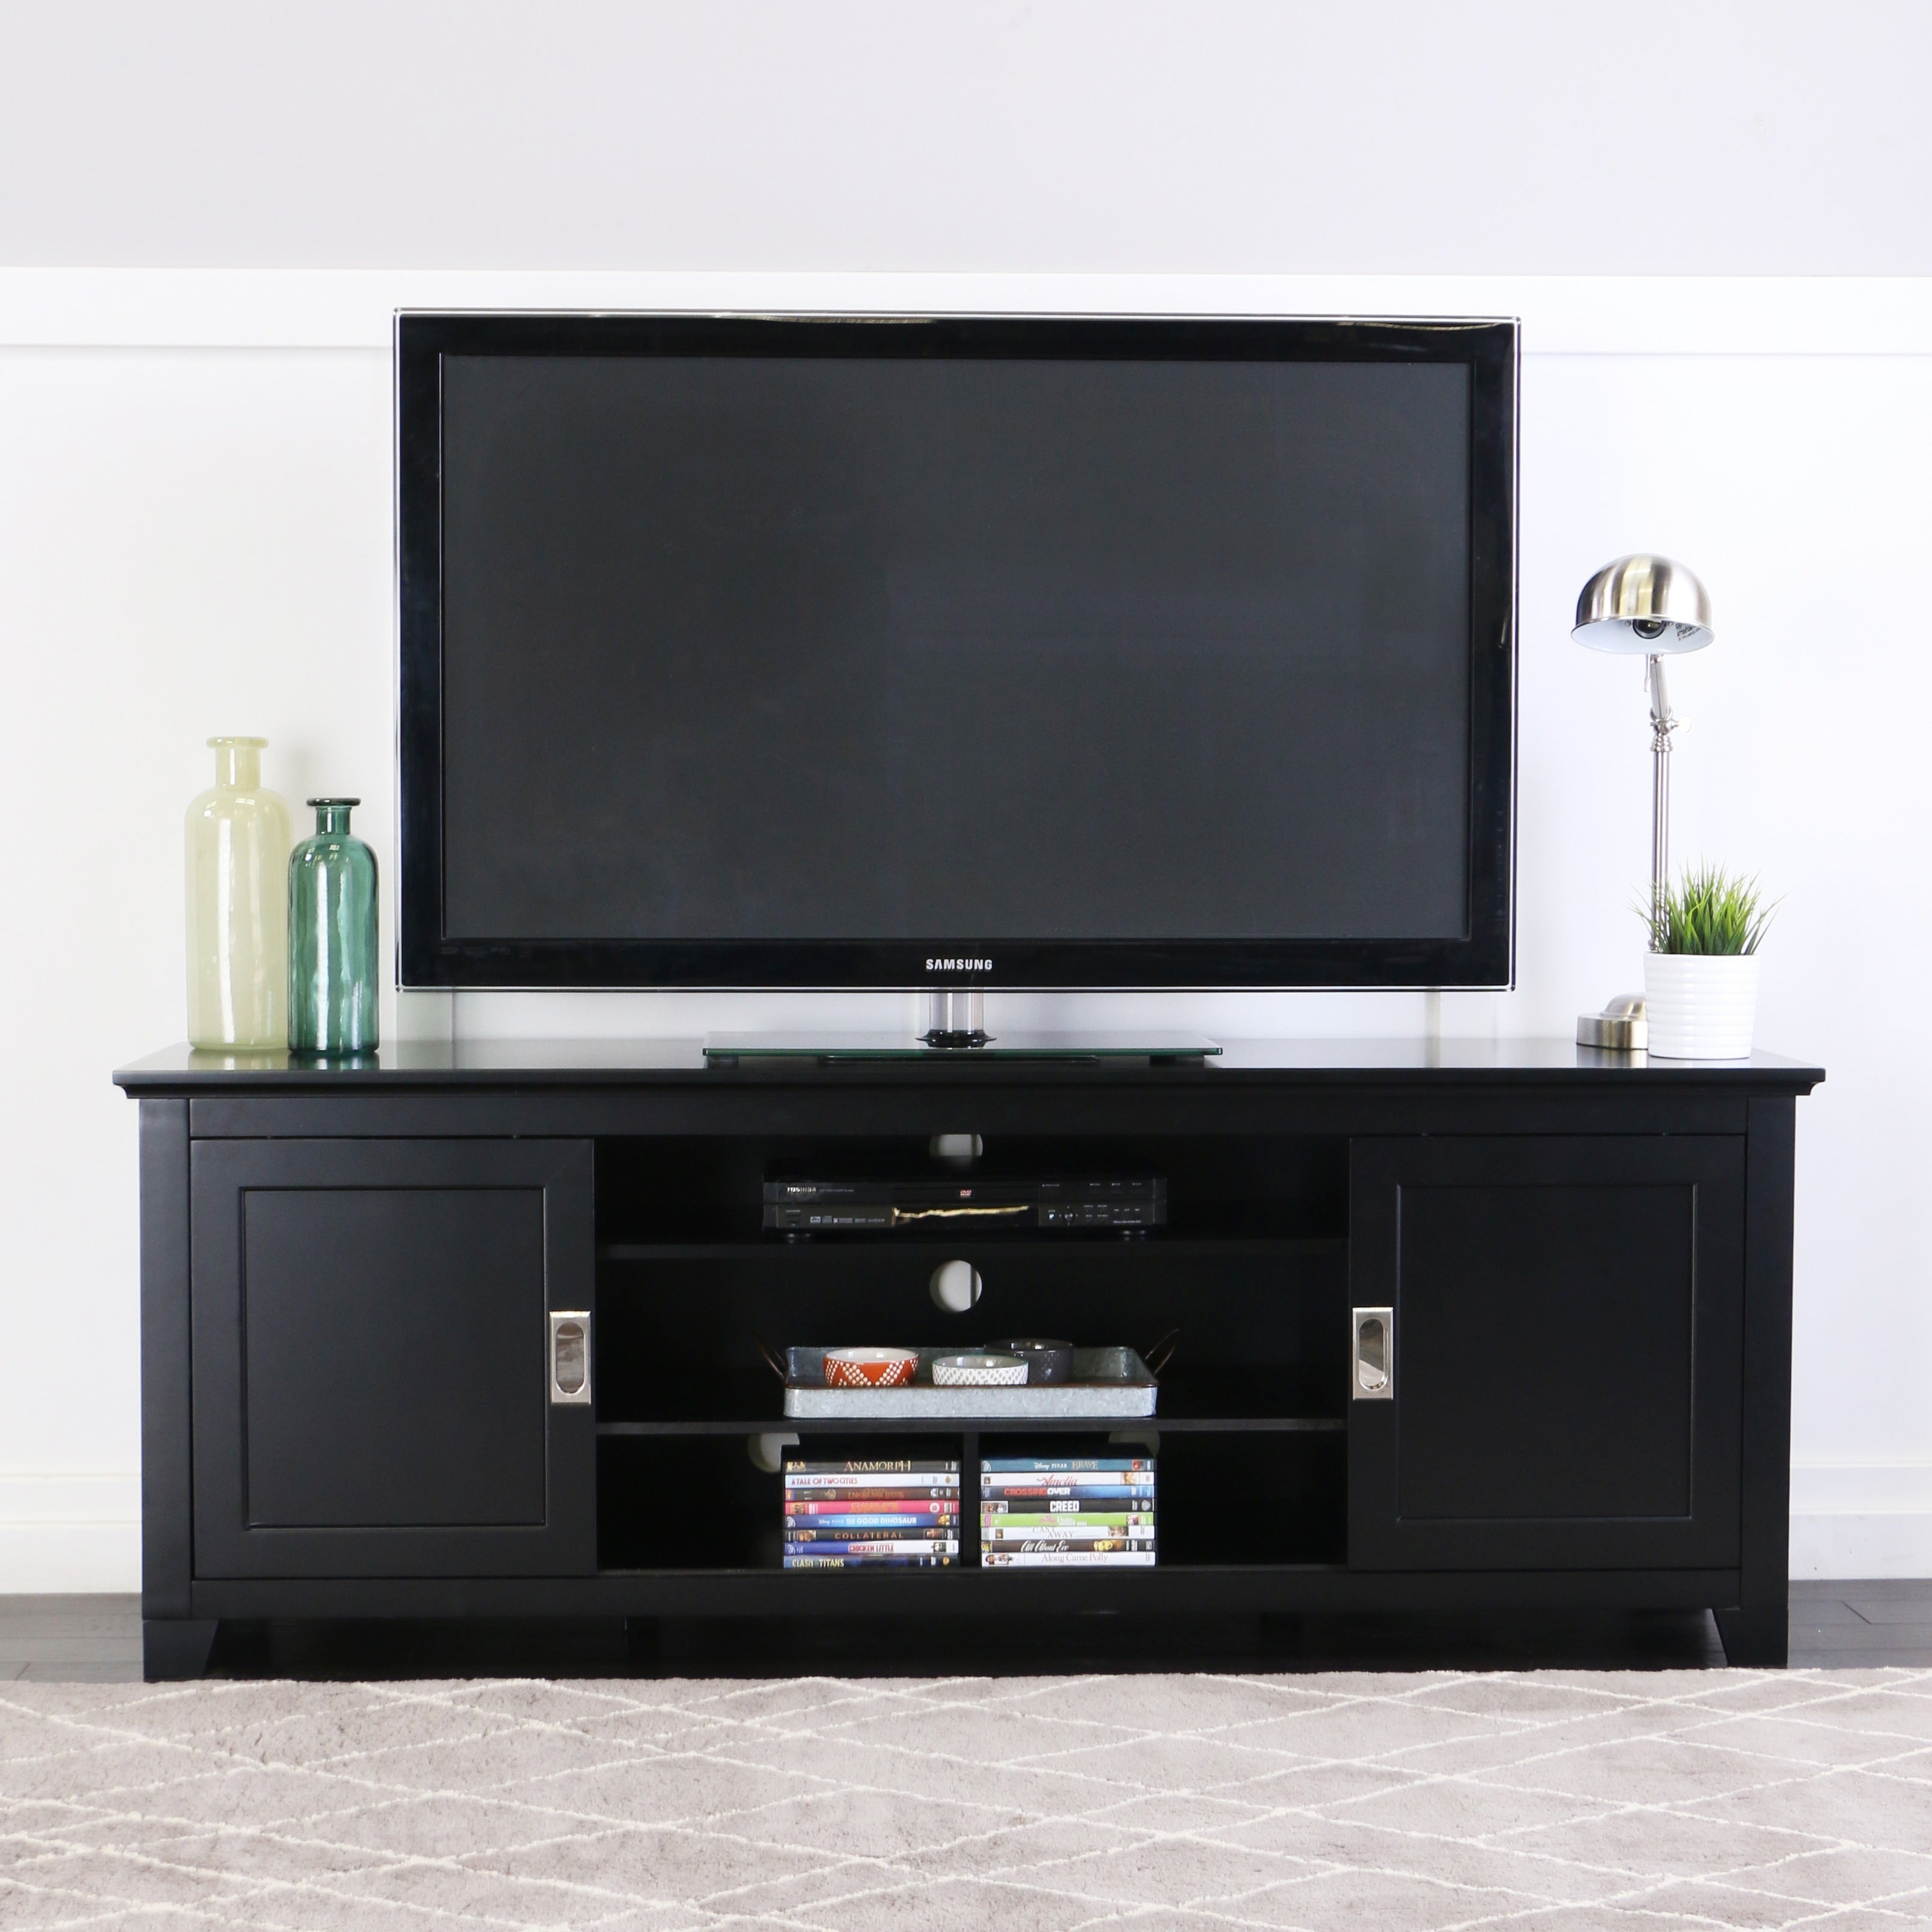 Shop 70 Tv Stand Console With Sliding Doors Black 70 X 18 X 25h